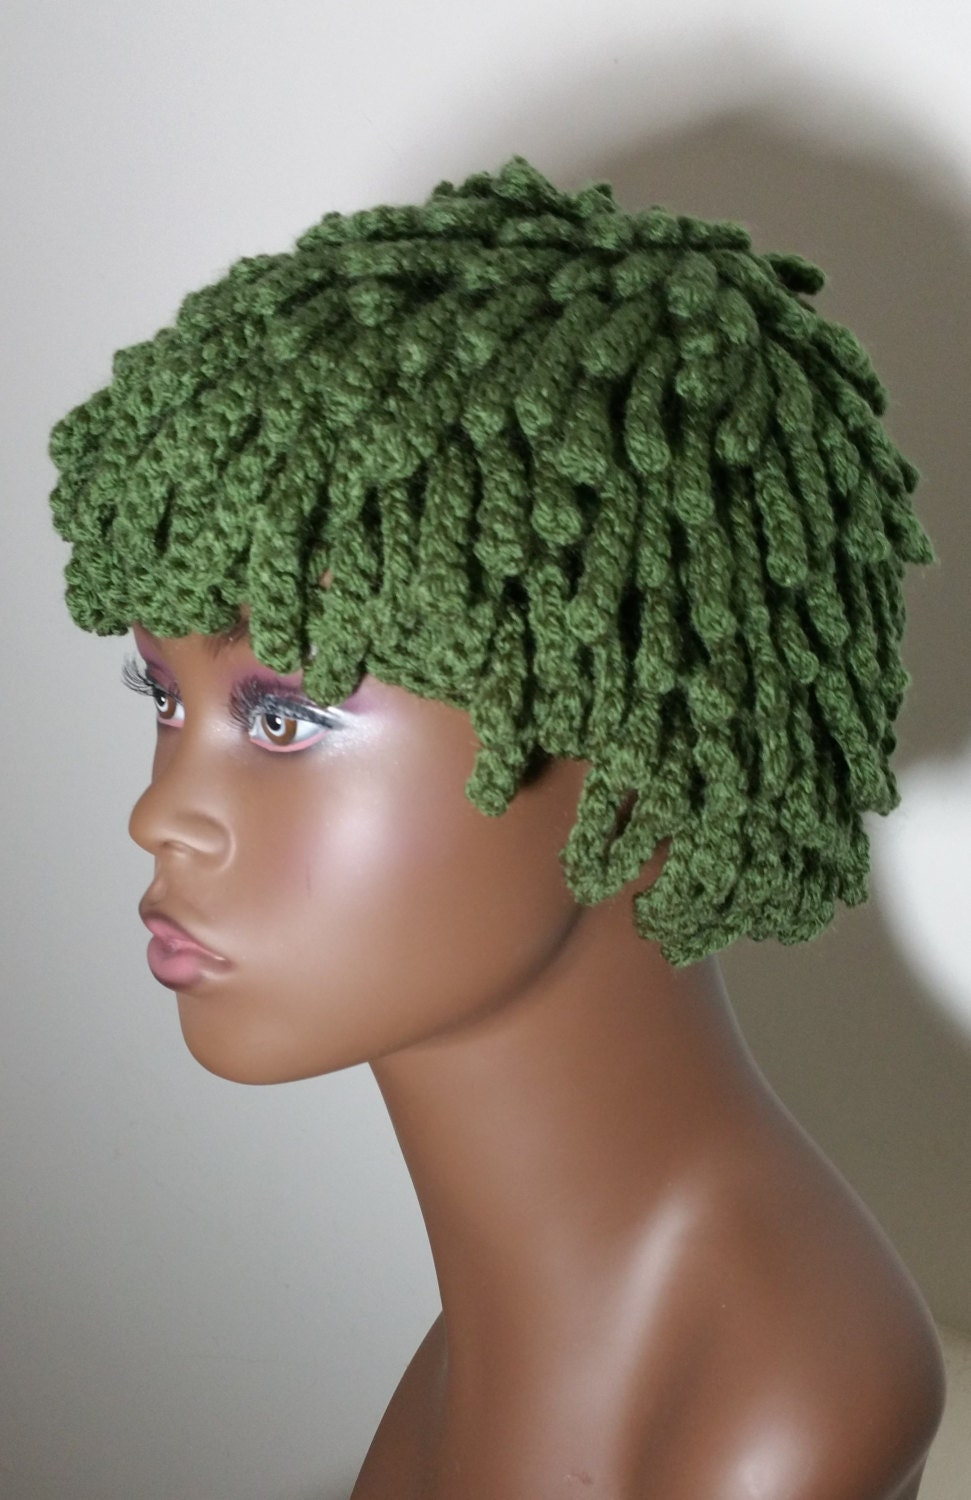 Knitting Pattern For Nudu Hat : Dreadlocks hat Nudu Beanie Nudu Hat Ski Hat Wig Hat Twists